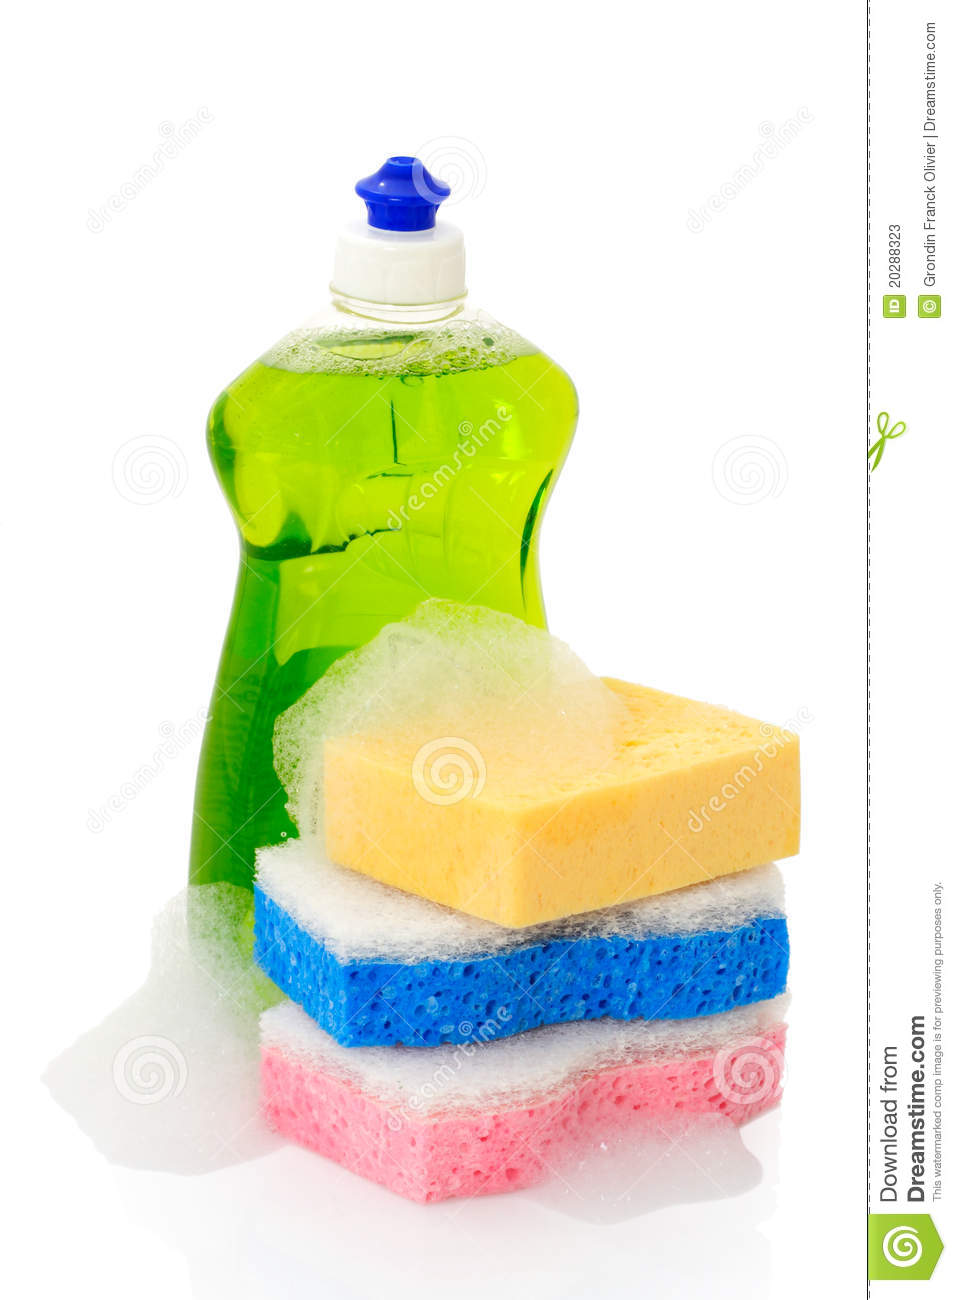 Liquid Soap Clip Art Dish Soap And Sponges #MkaugV.